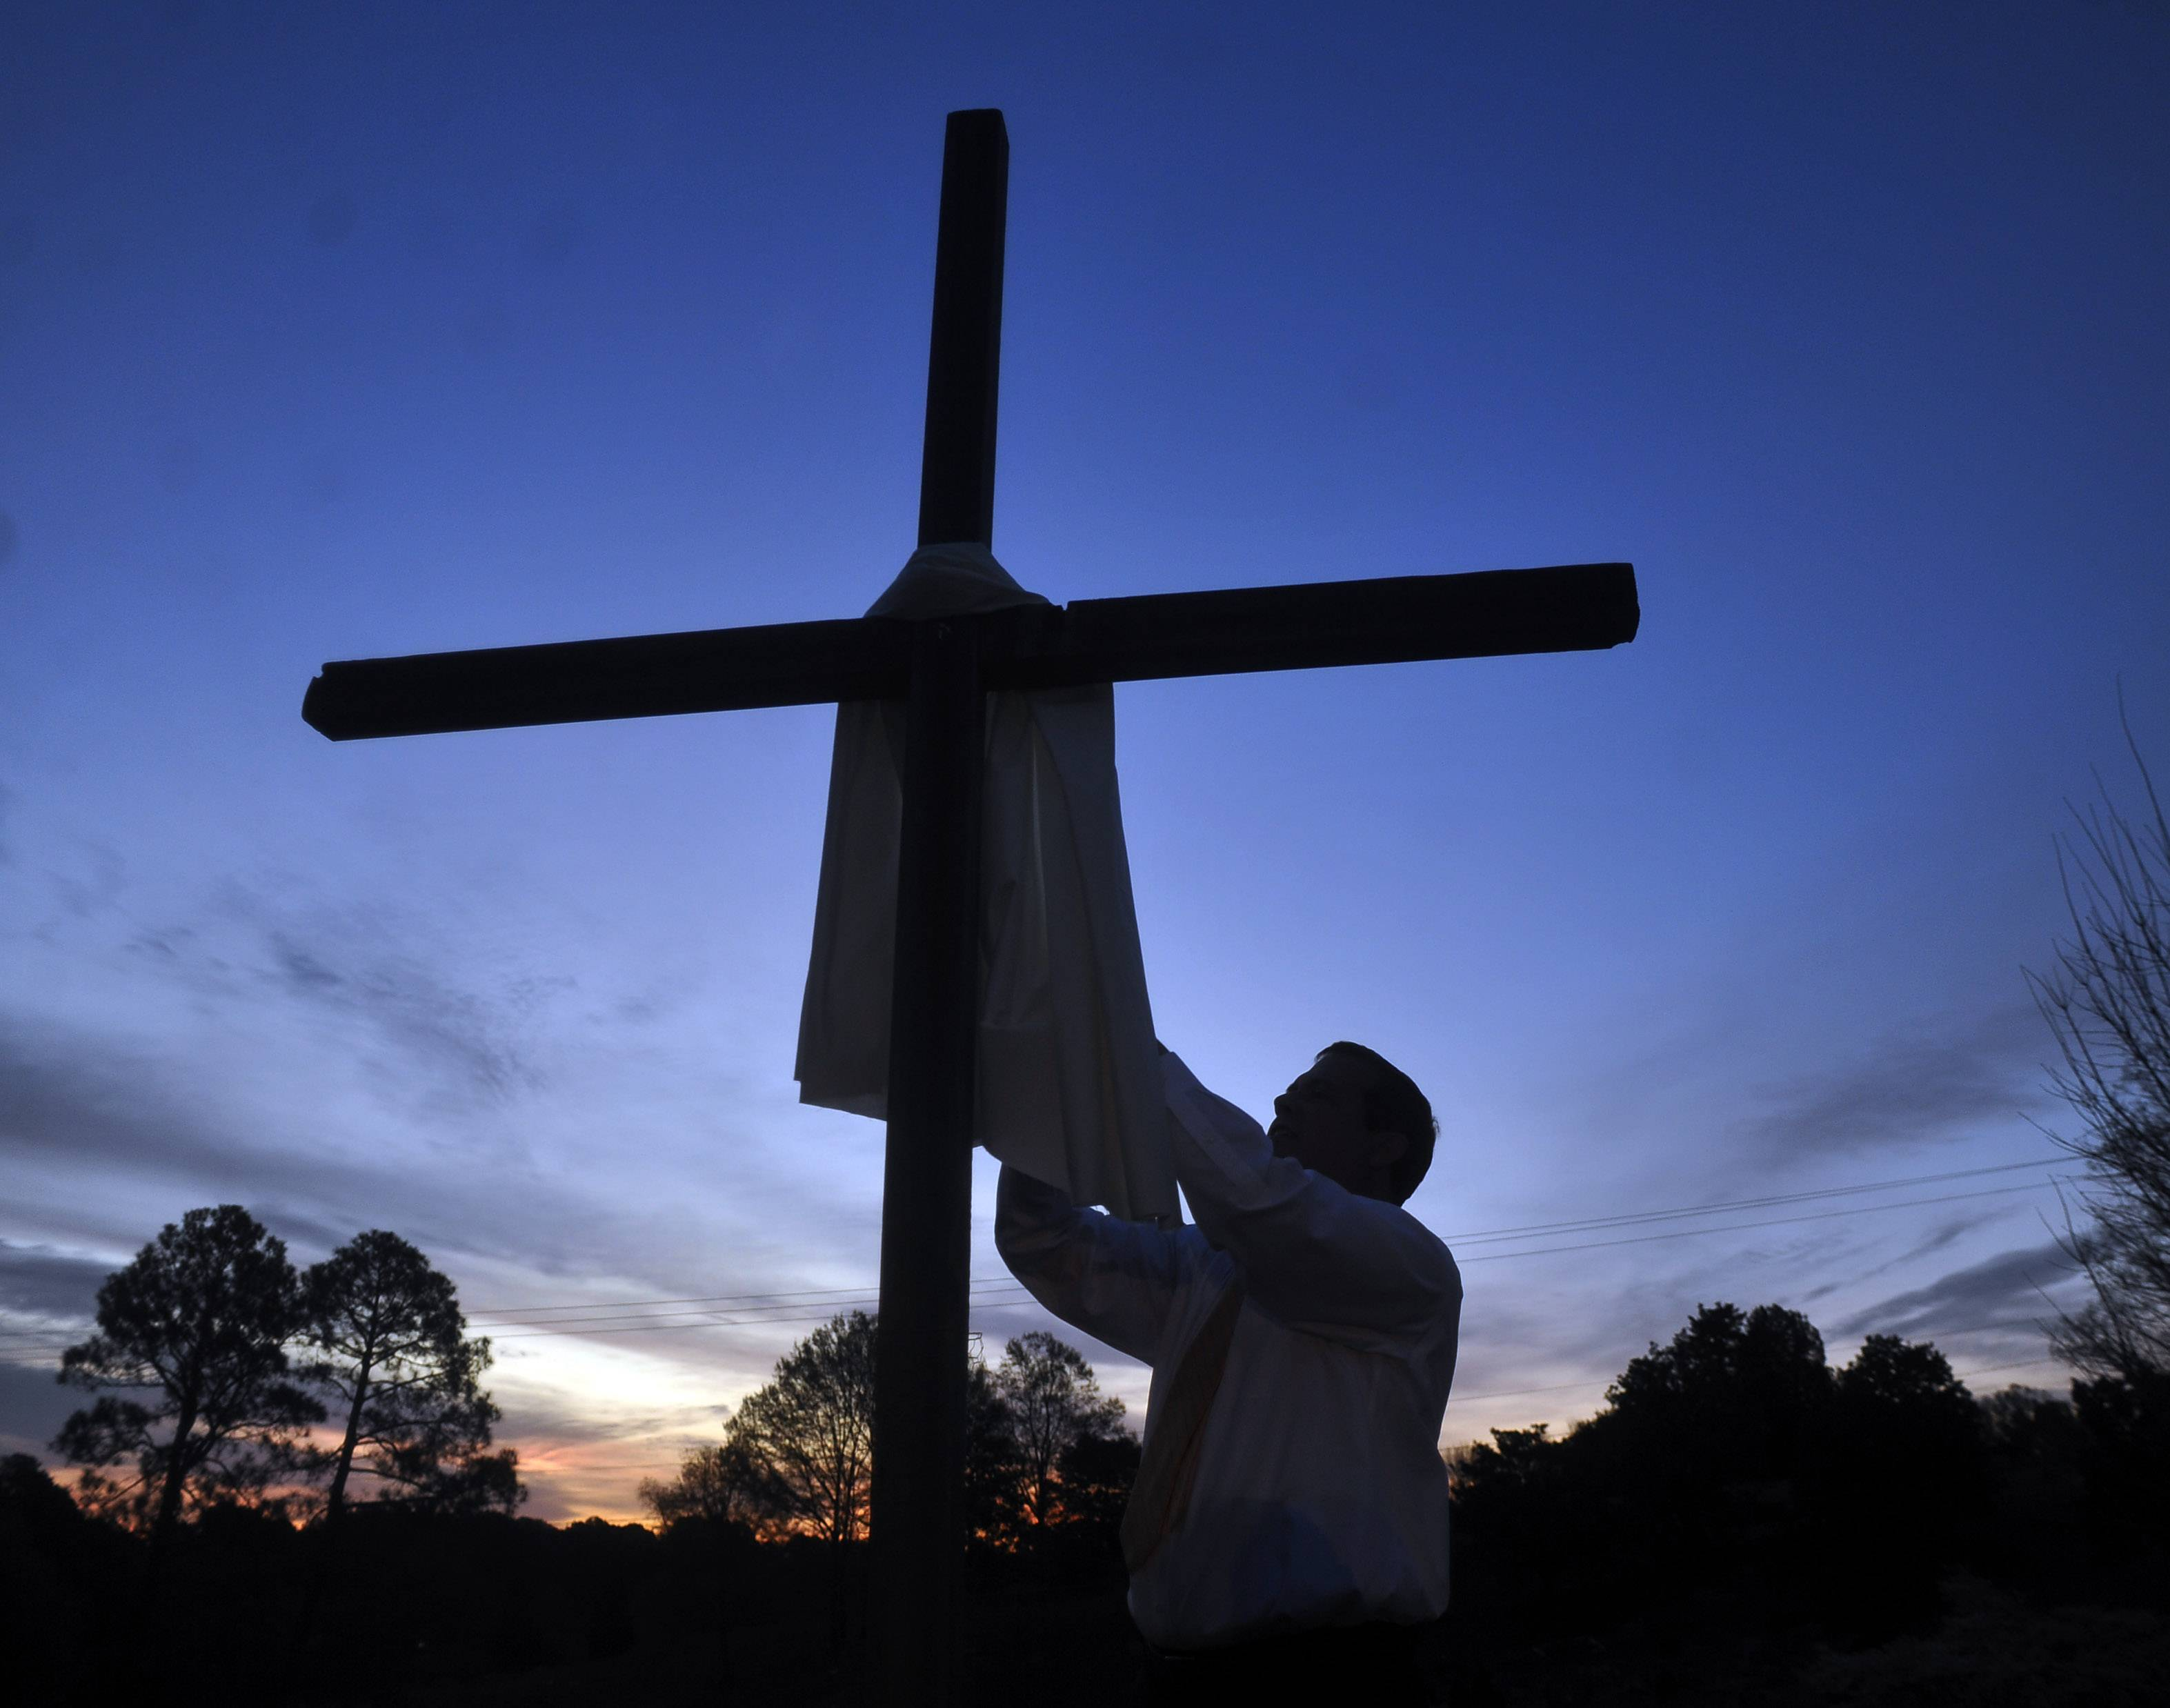 Rev. Bill Barksdale puts a cloth on a cross before the start of a Easter Sunday sunrise service at St. Andrew's United Methodist Church in Oxford, Miss. on Sunday, April 5, 2015.